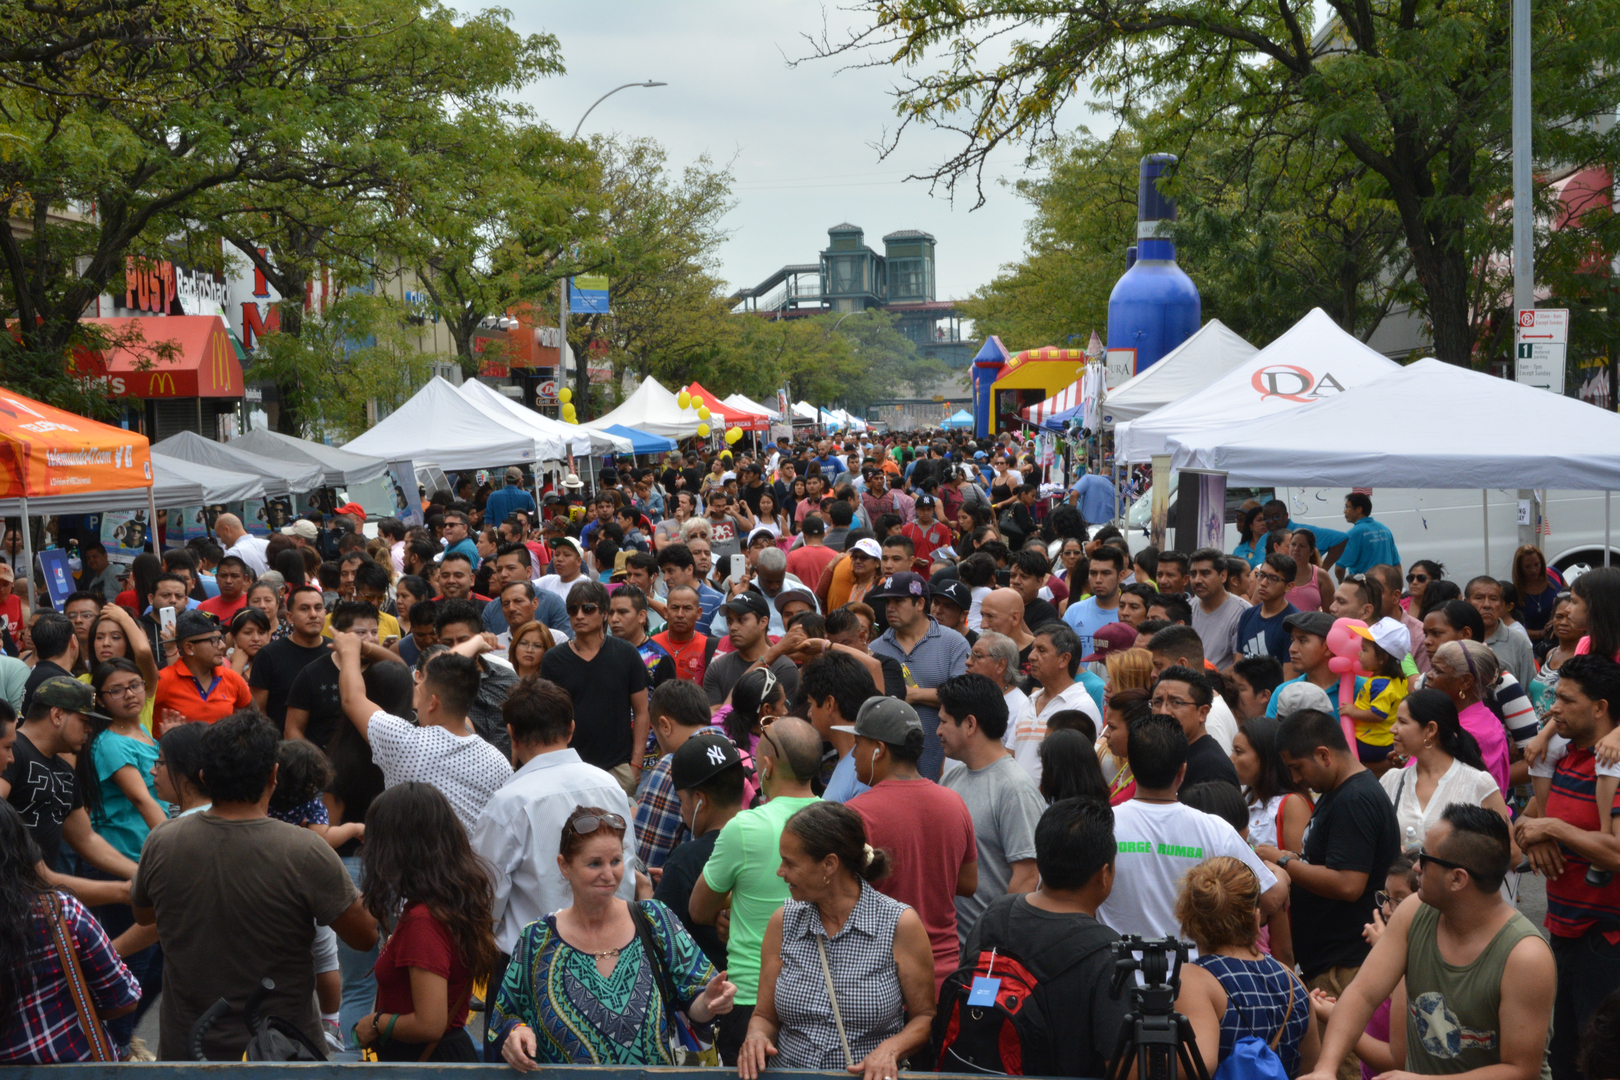 Carnaval de la Cultura Latina - When: July 16 from Noon to 6PMWhere: Junction Blvd between 163rd St & Westchester Ave in the BronxCost: FREEClick here for event websitePhoto: Carnaval de la Cultura Latina